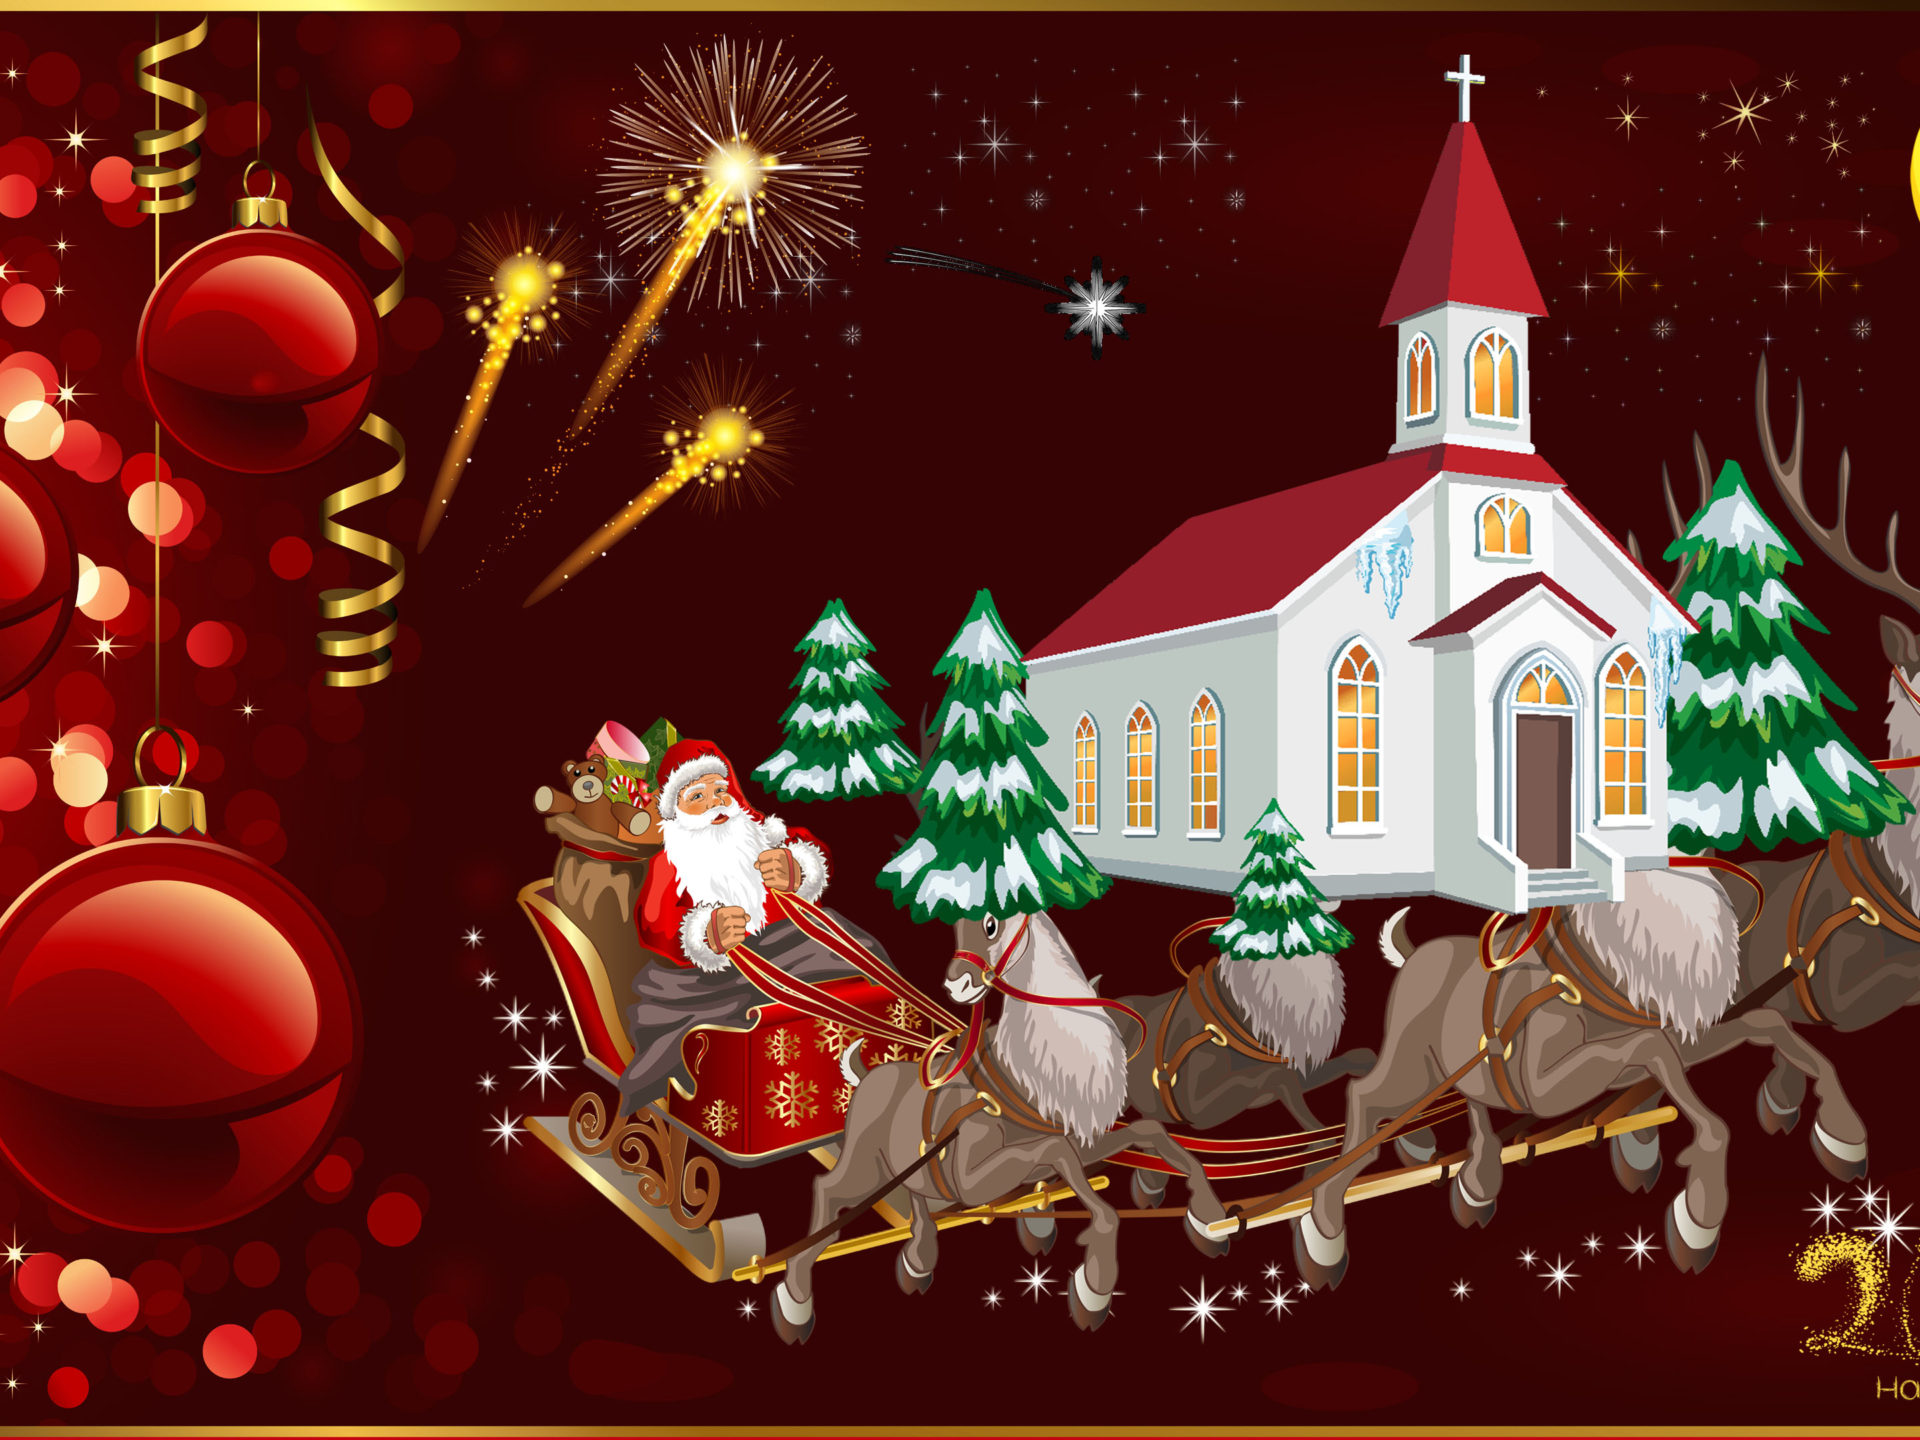 Happy New Year 2020 Merry Christmas Christmas Greeting Card Santa 1920x1440